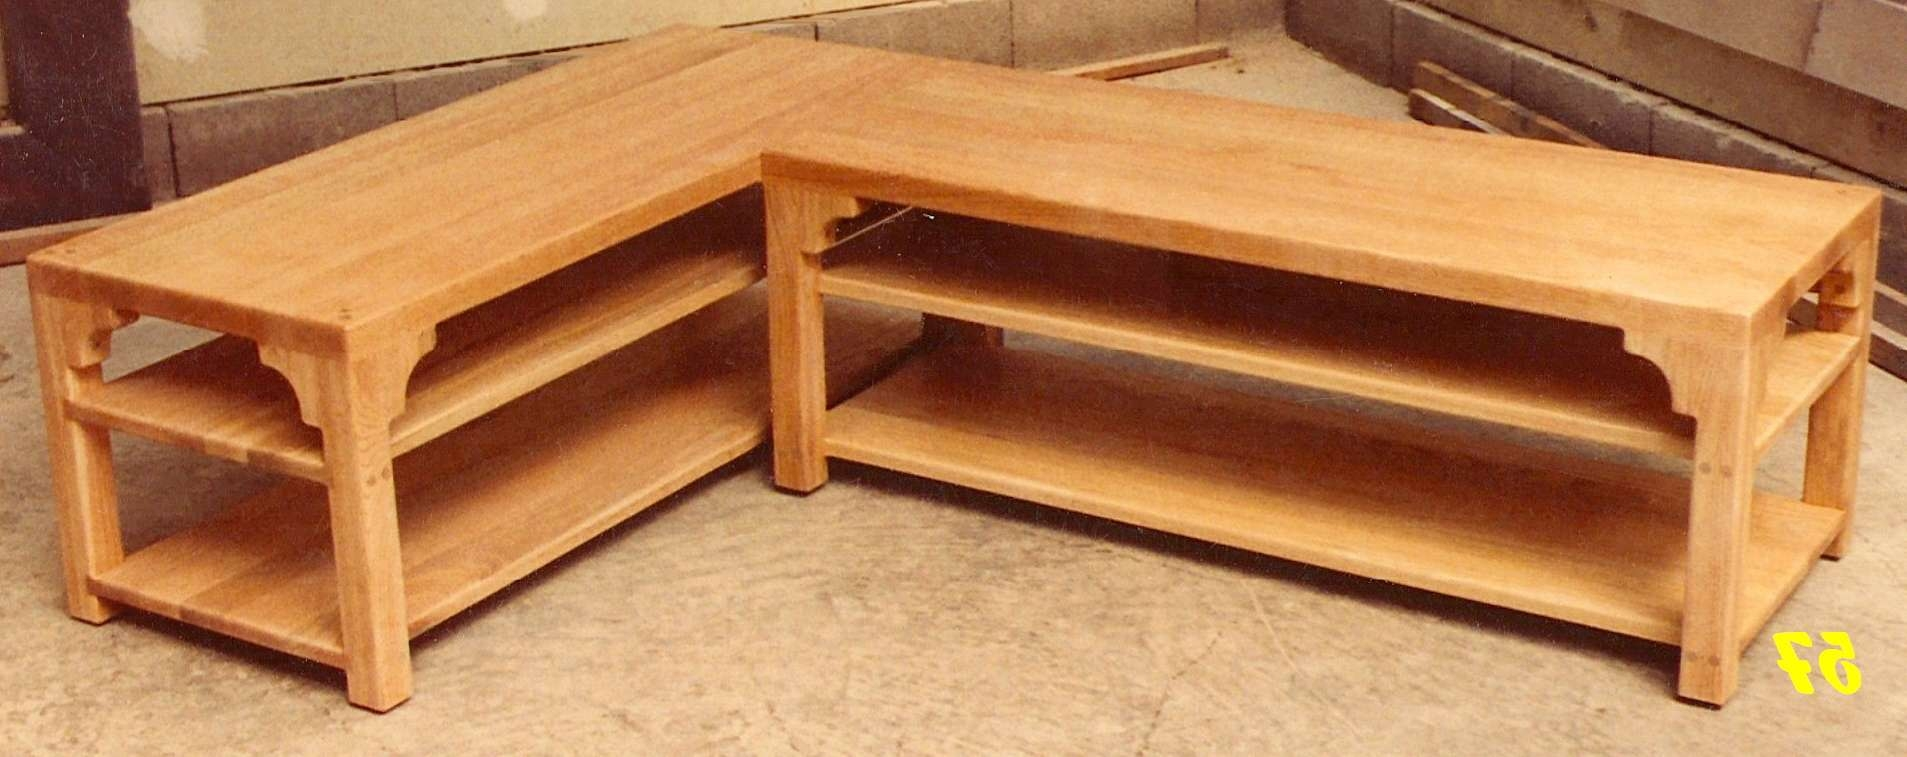 Most Recently Released Contemporary Oak Coffee Table Inside Coffee Tables Ideas: Top Oak Coffee Table And End Tables Real Wood (View 16 of 20)